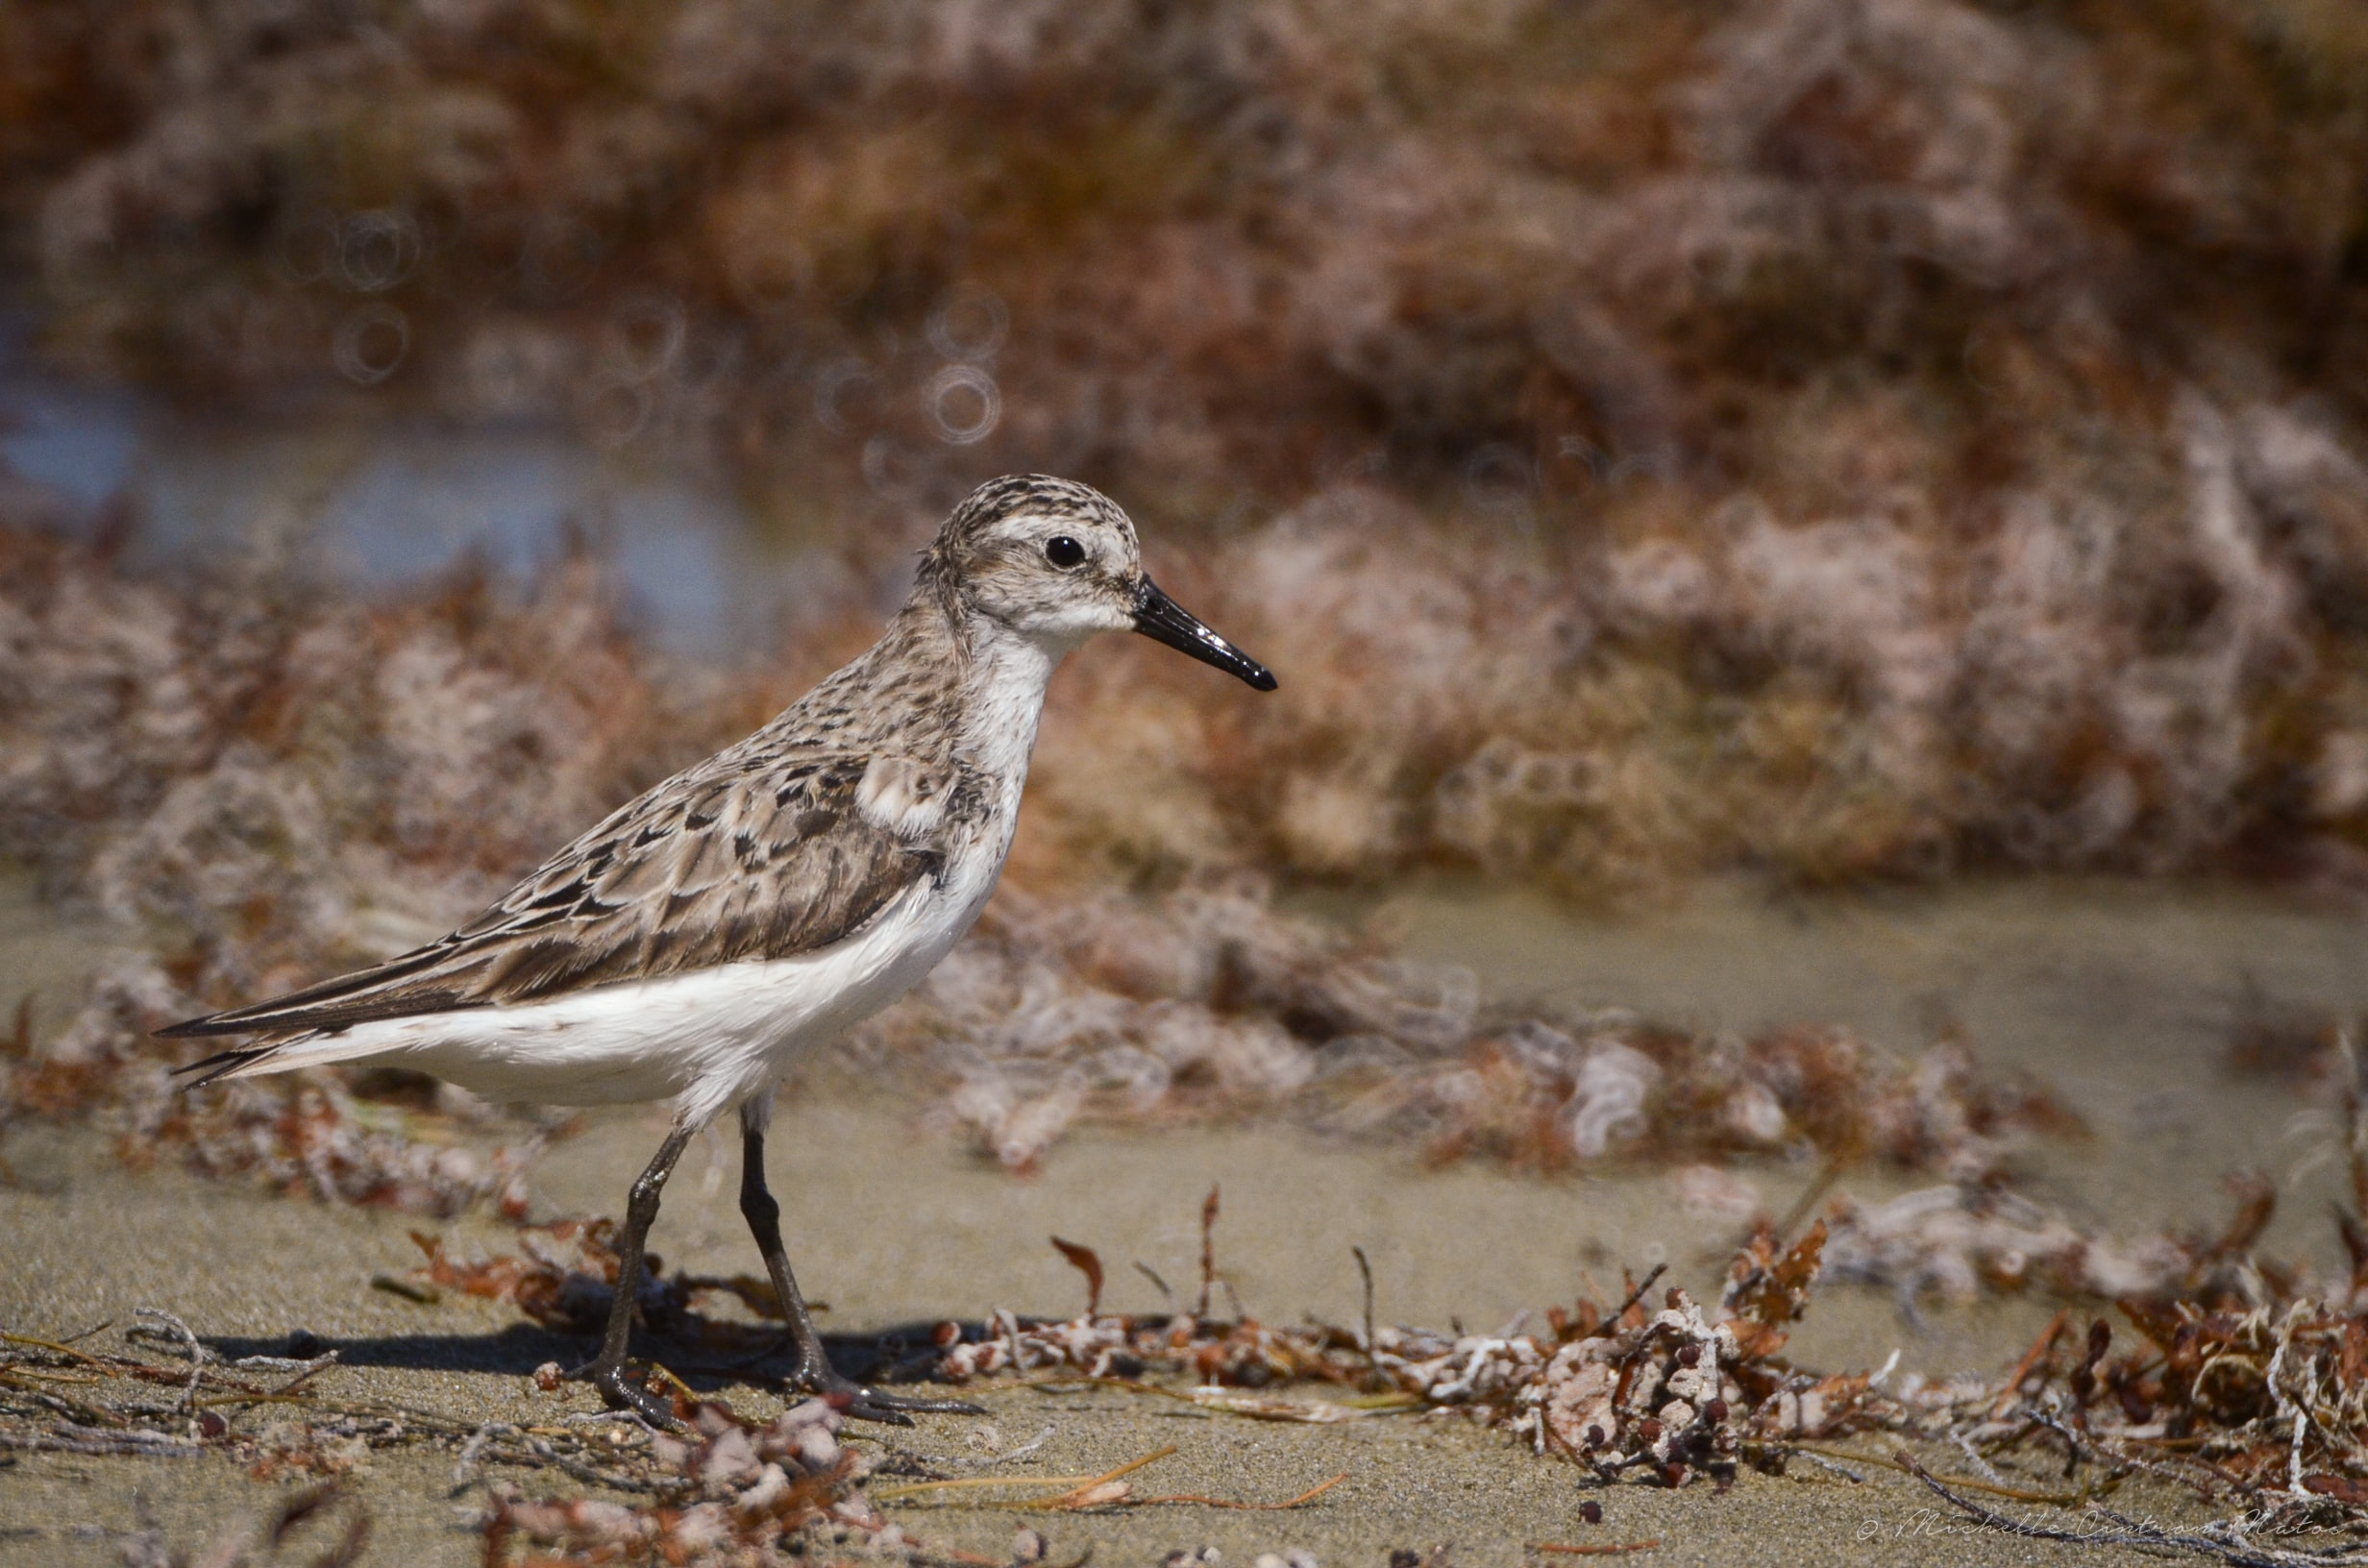 A sandpiper walking down a beach covered with dead leaves